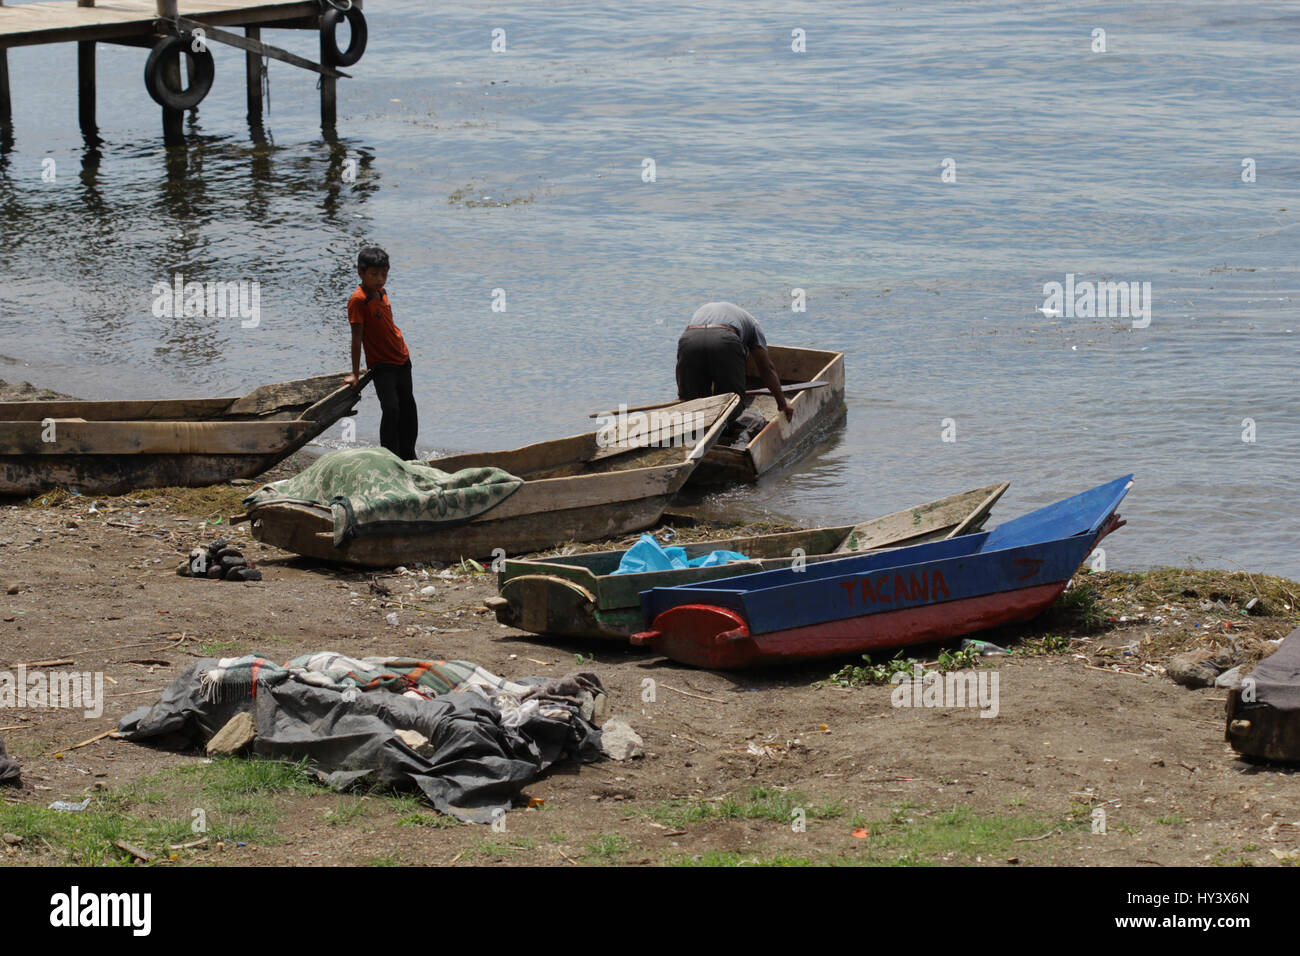 Young kid is watching his father preparing a boat for fishing on Atitlan Lake in Guatemala - Stock Image